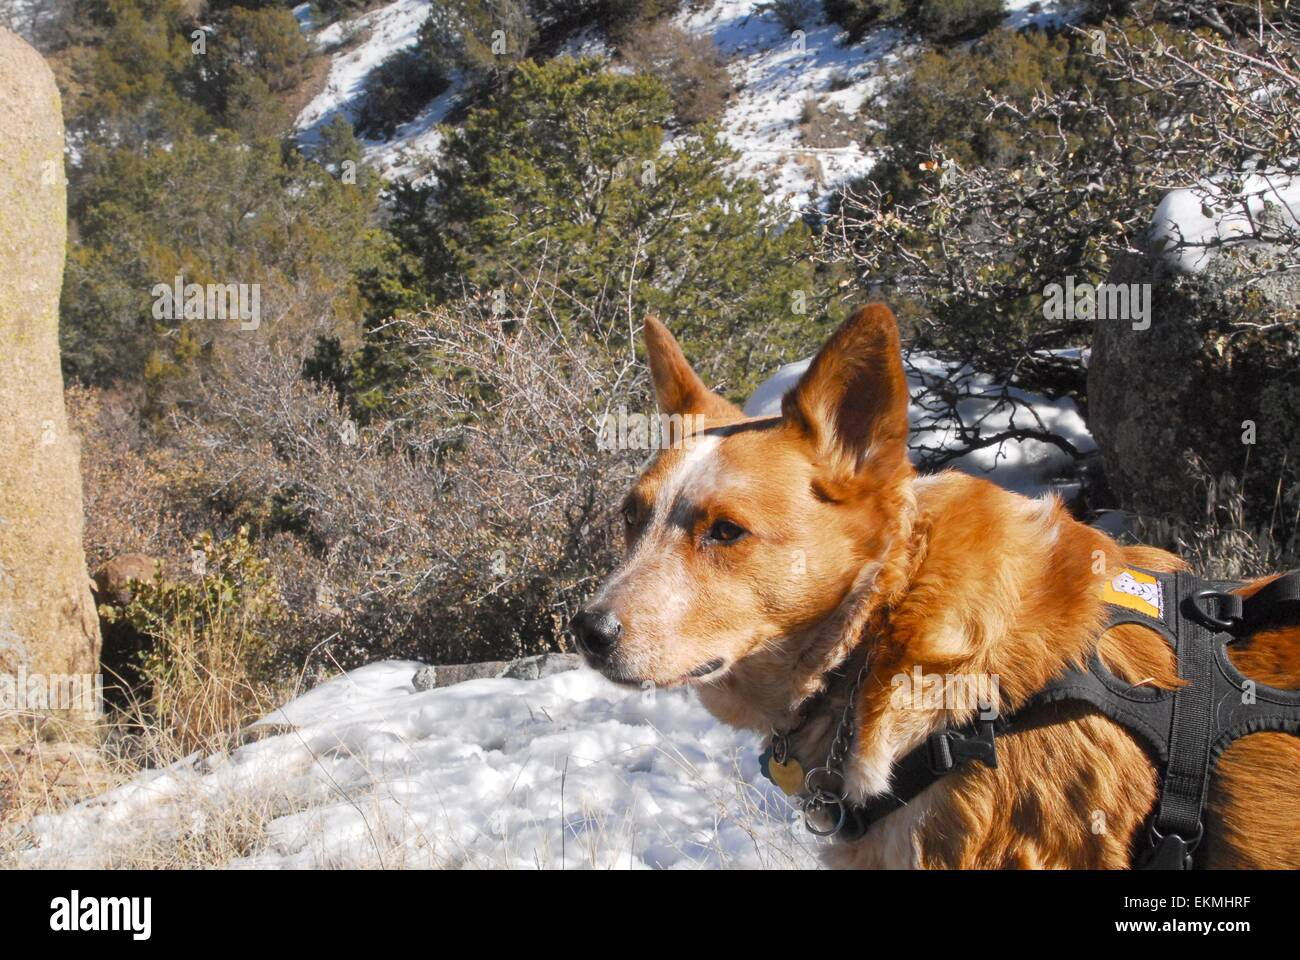 My dog, Shiloh, taking a break along trail in Sandia Mountains of New Mexico - USA - Stock Image